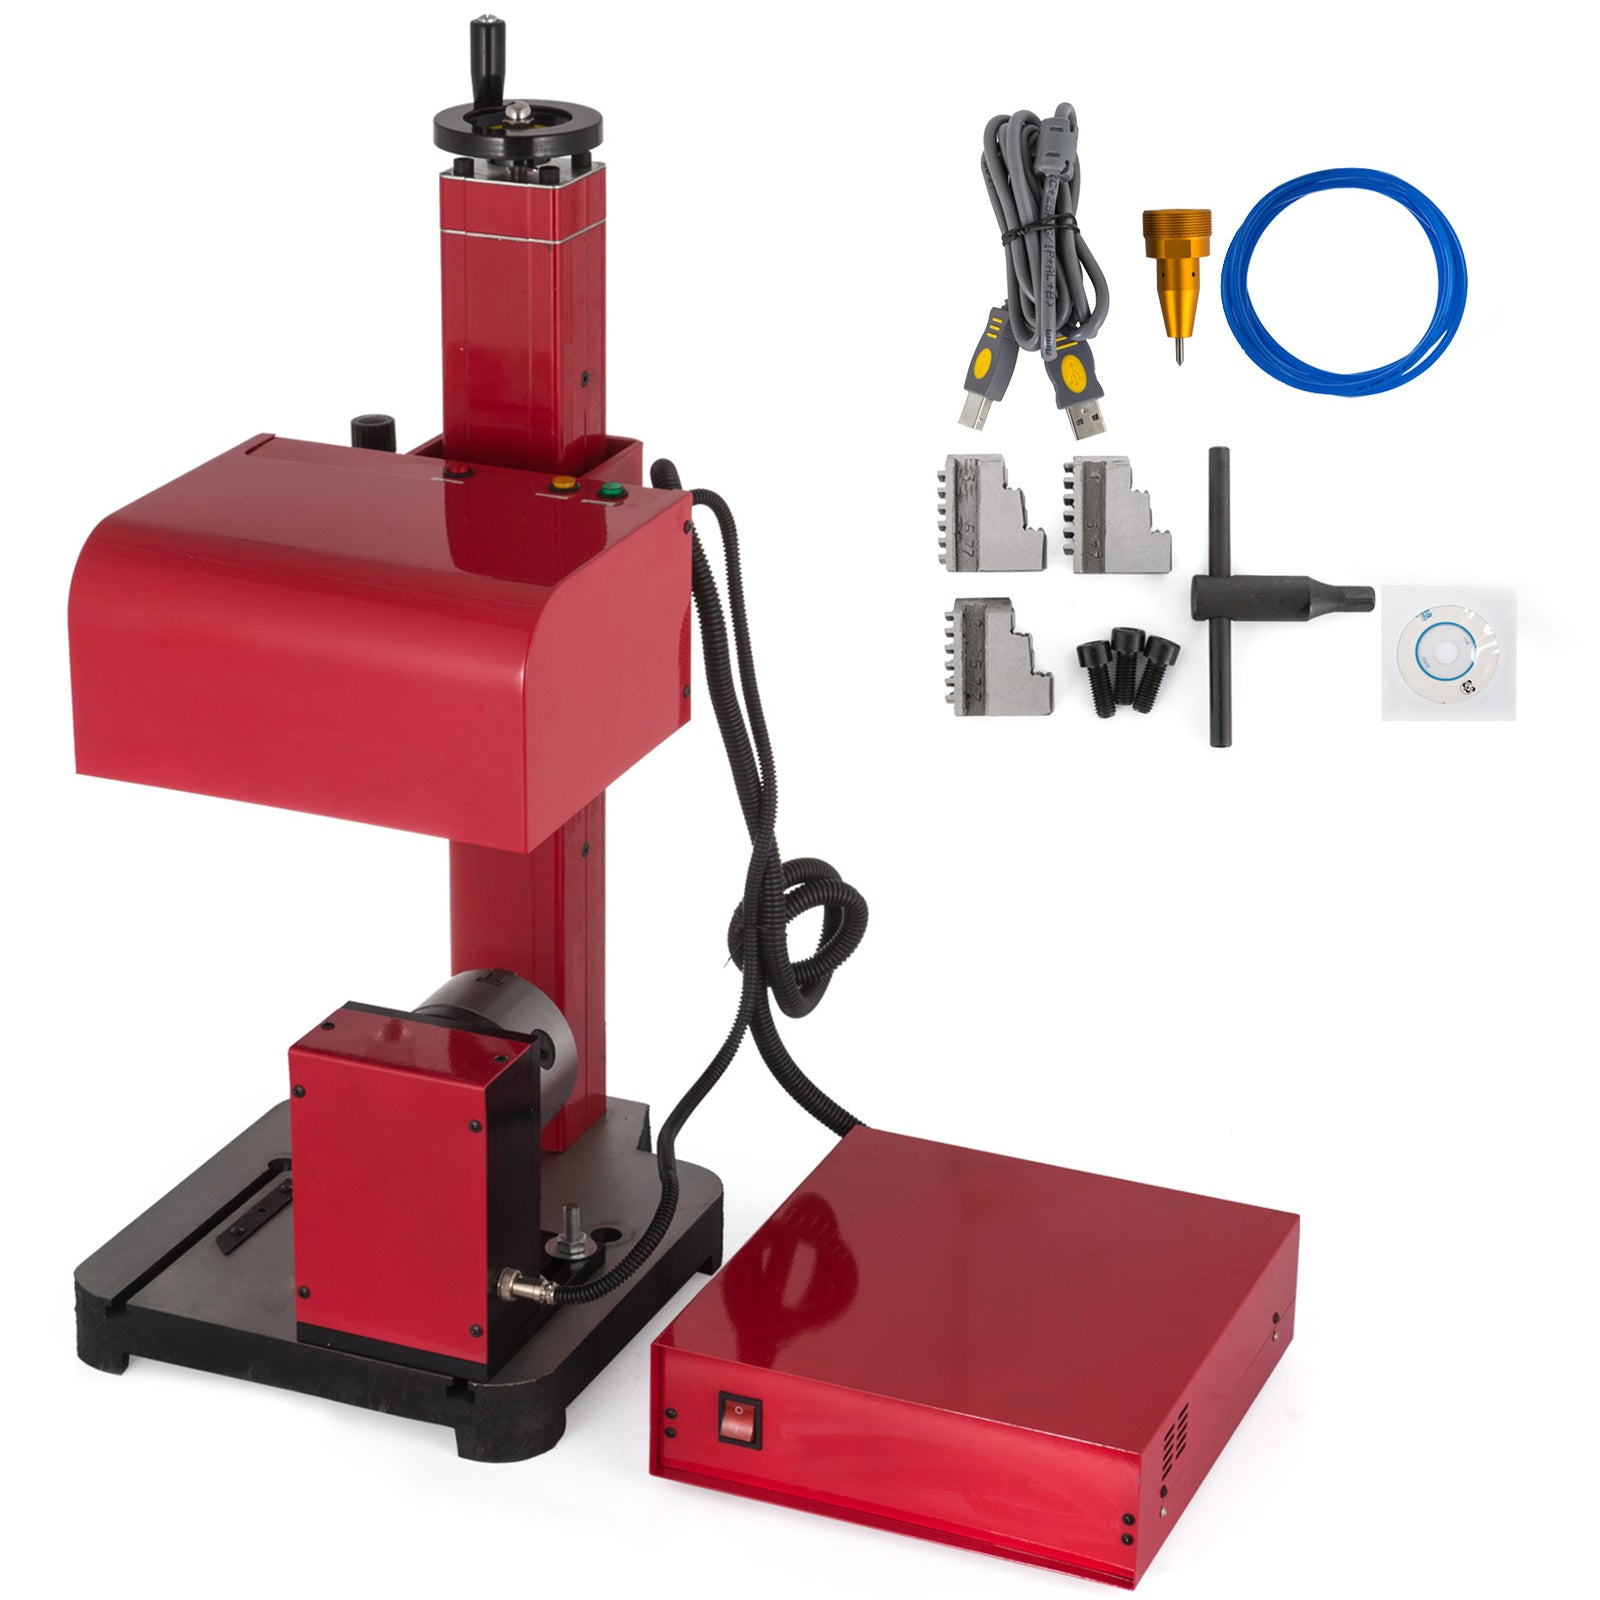 17x11cm Pneumatic Marking Machine & Rotary Tool 7x4.4 Inch Serial Number Code